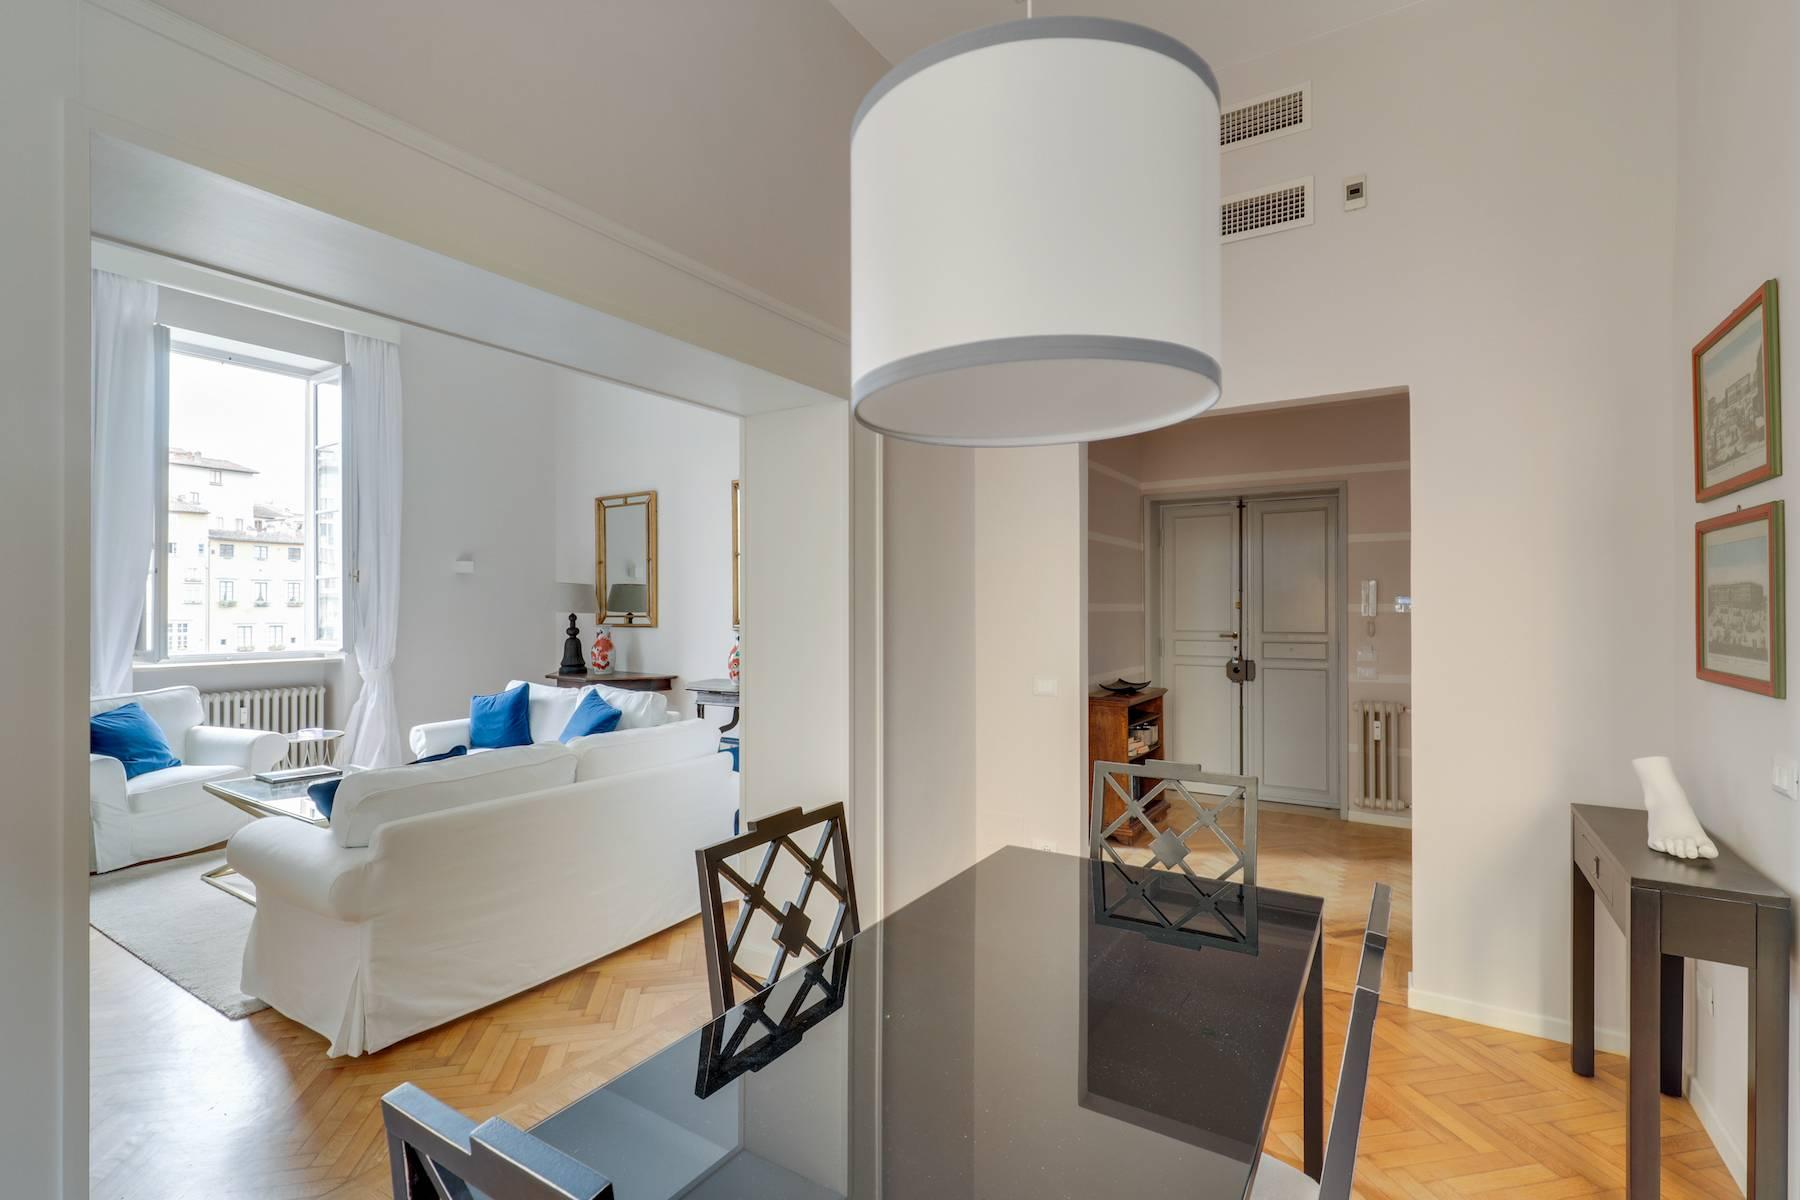 Beautifully renovated apartment overlooking Ponte Vecchio - 5